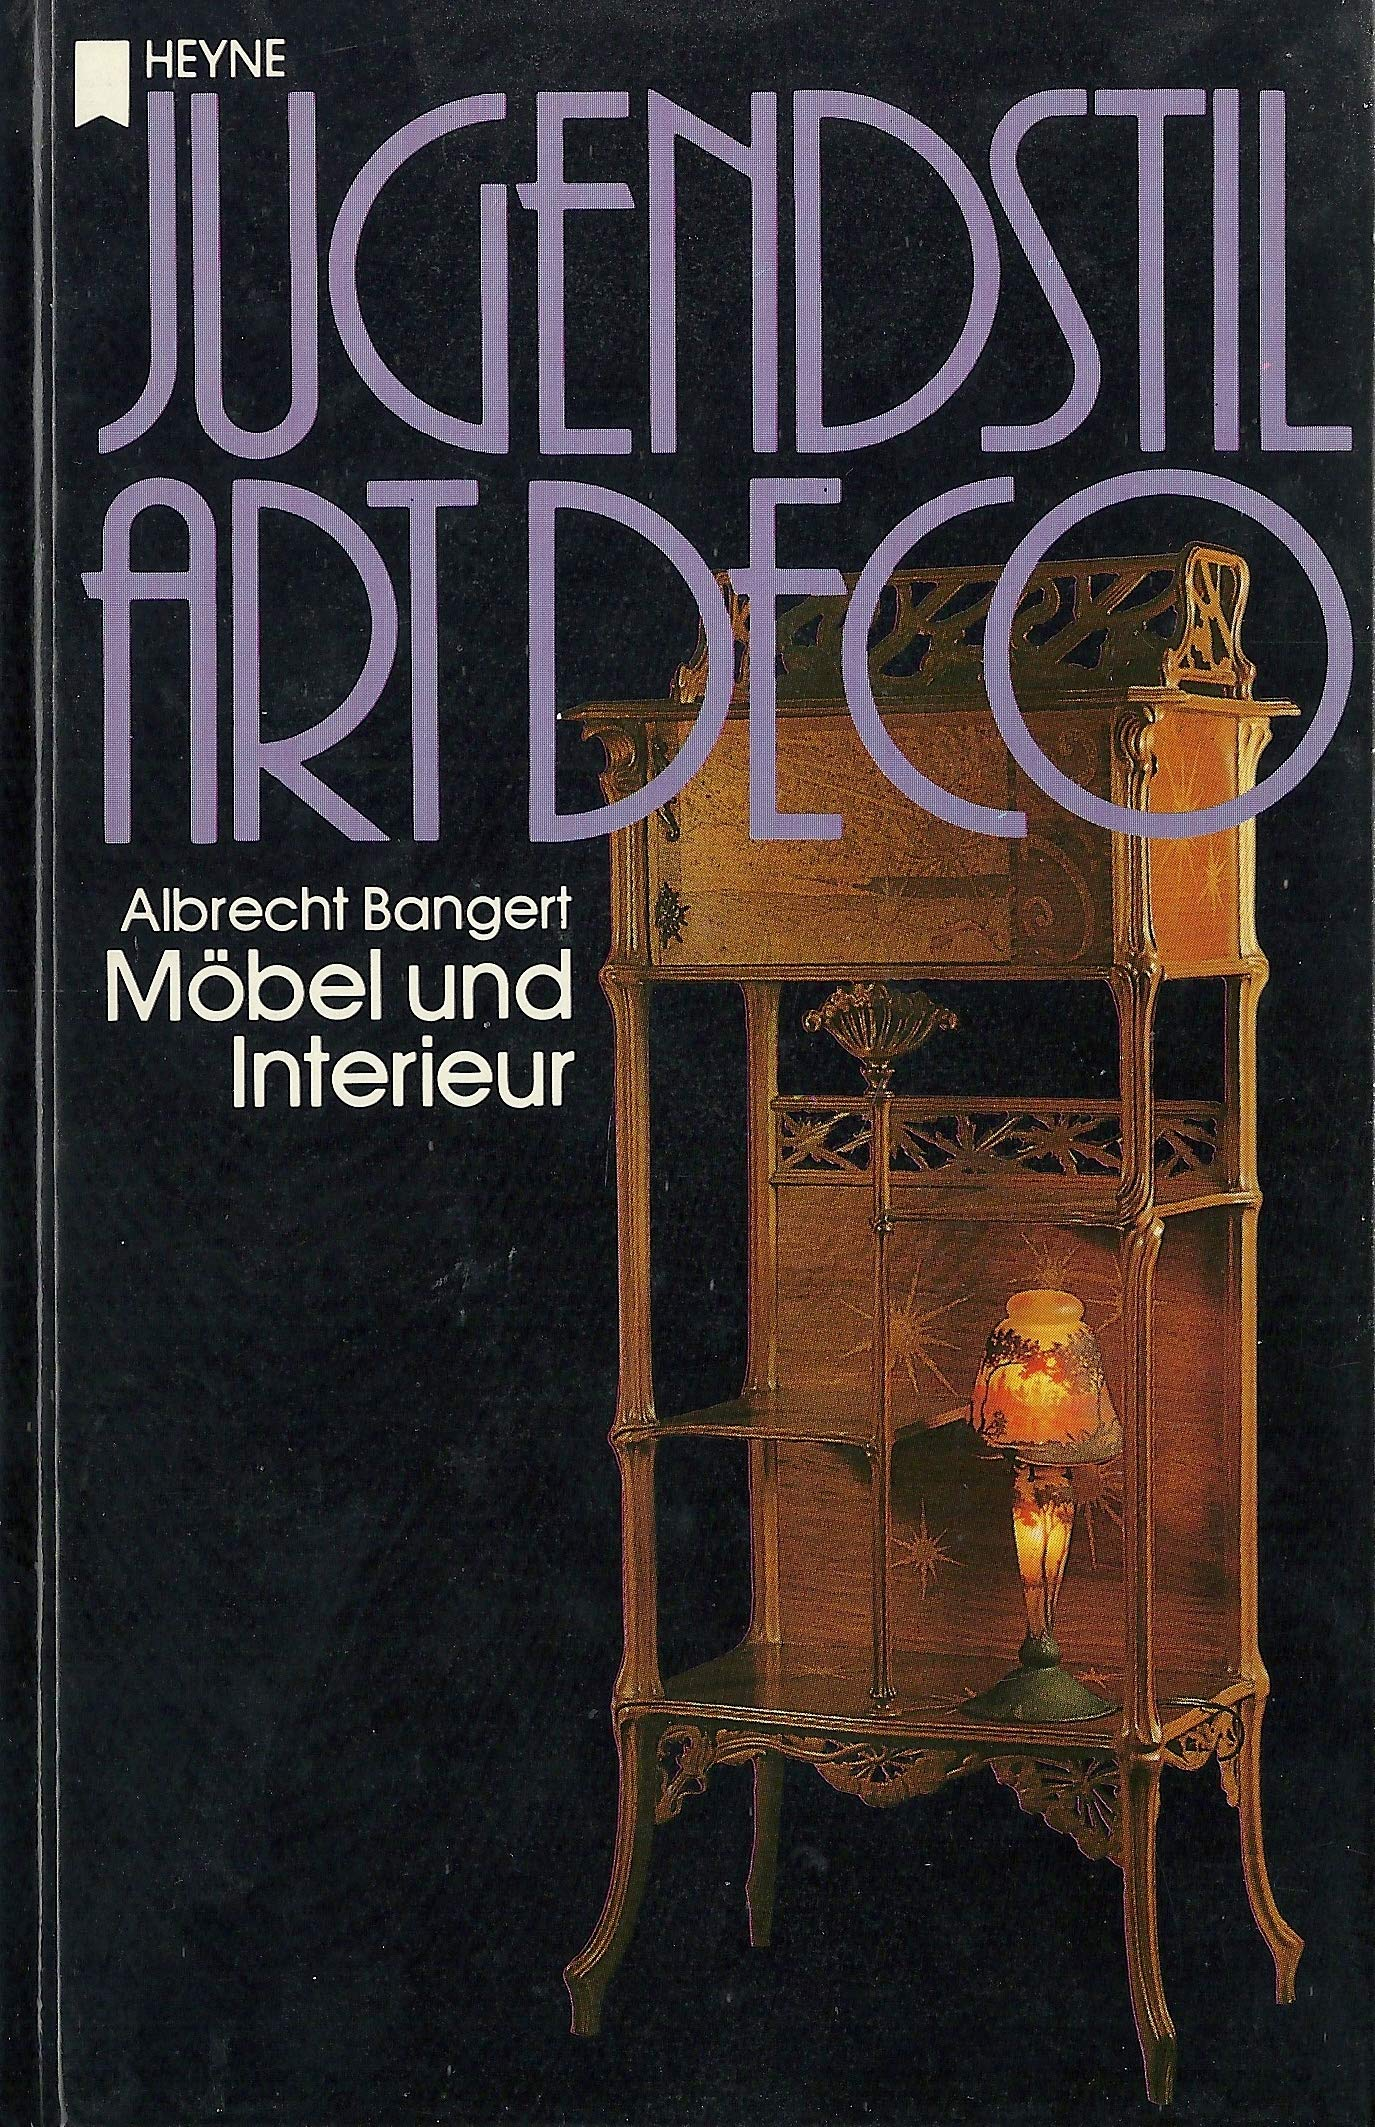 Jugendstil / Art deco I. Möbel und Interieur.: Amazon.de ...